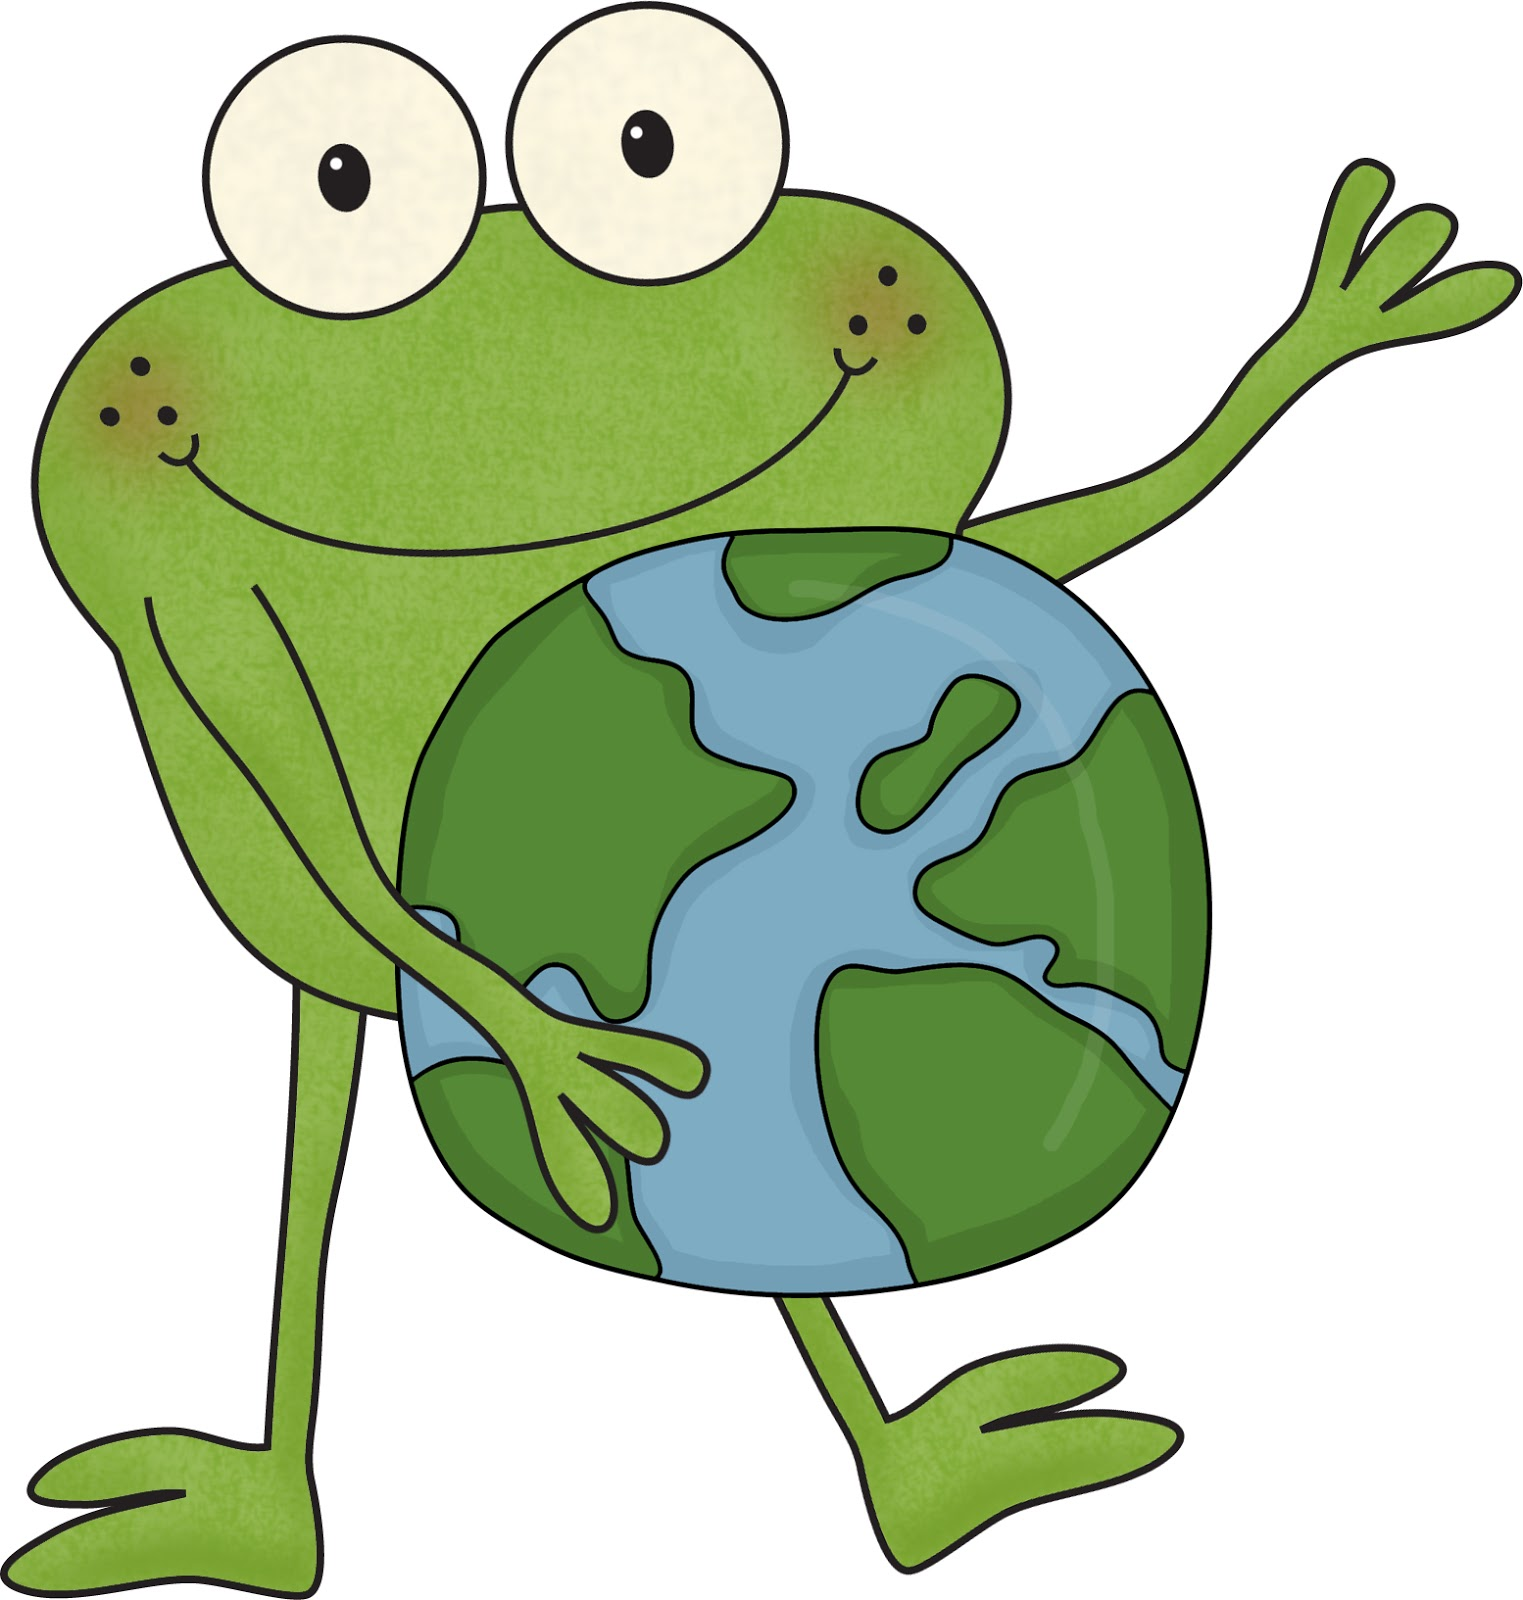 Earth clipart for kids at getdrawings free for personal use 1523x1600 earth day clipart for kids publicscrutiny Images